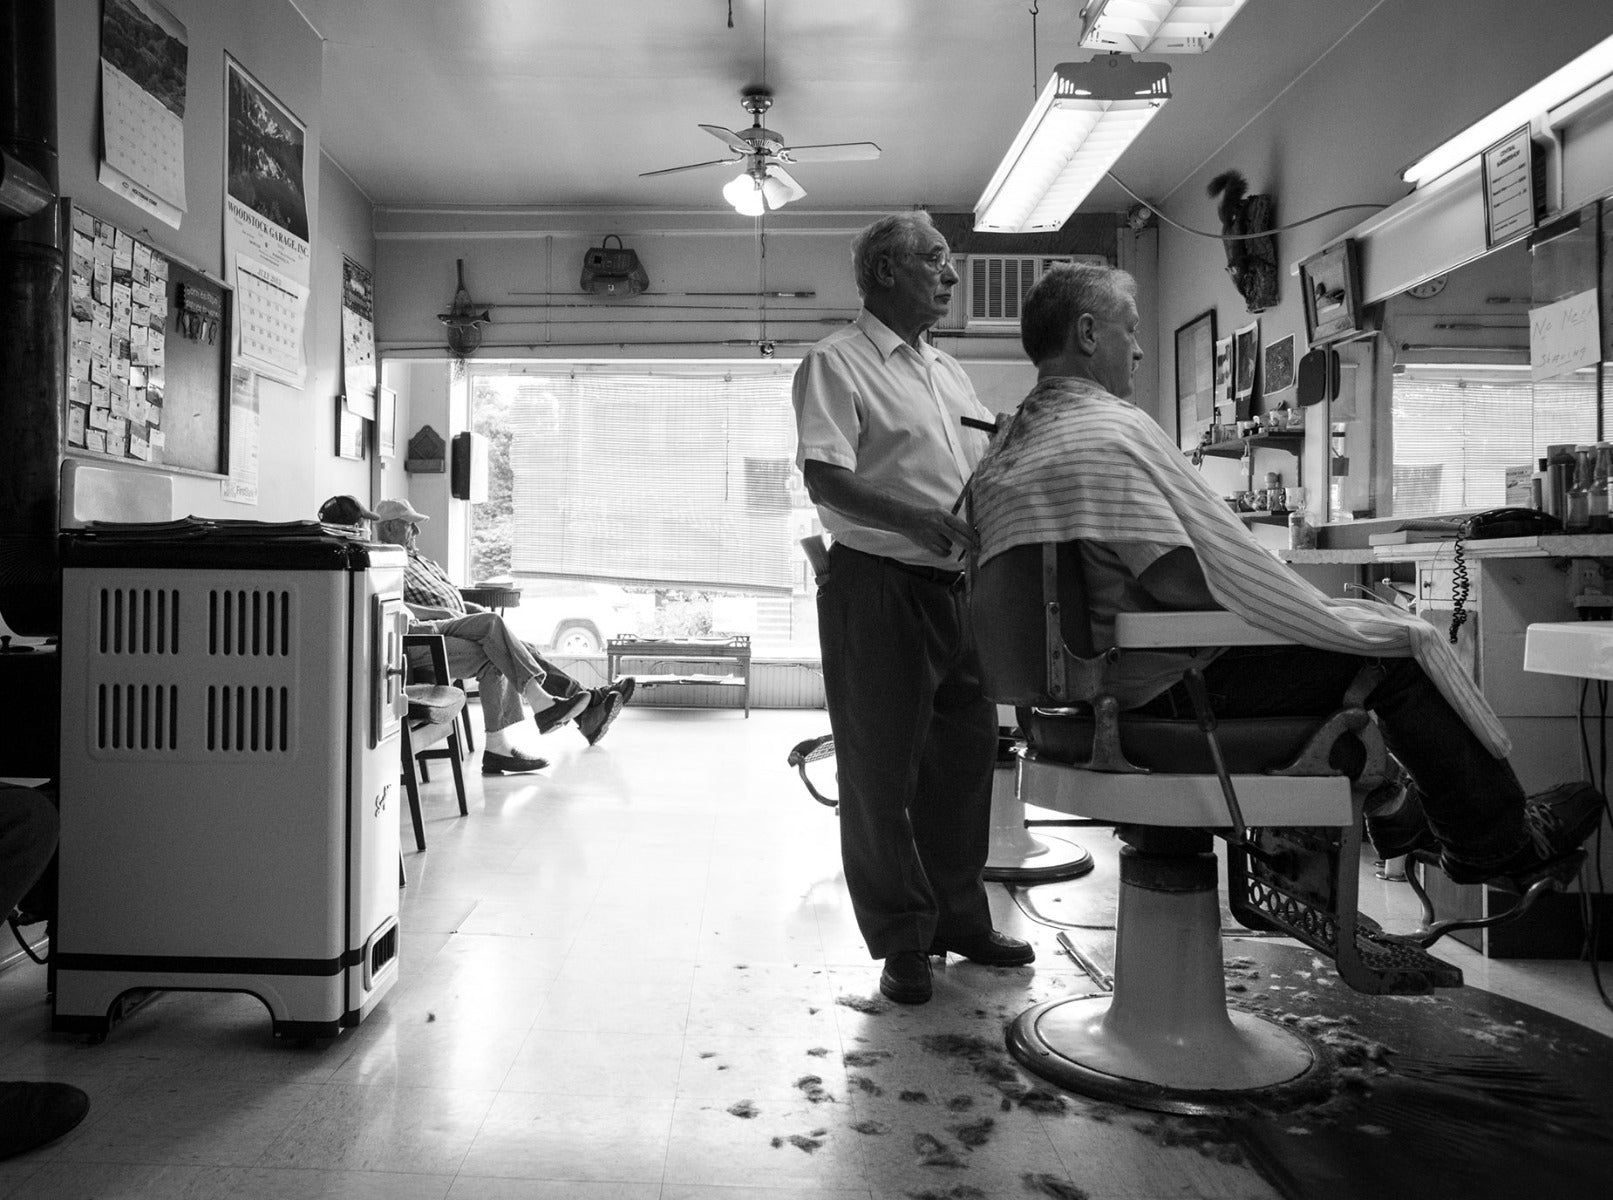 Man getting a haircut in a barbershop with barber